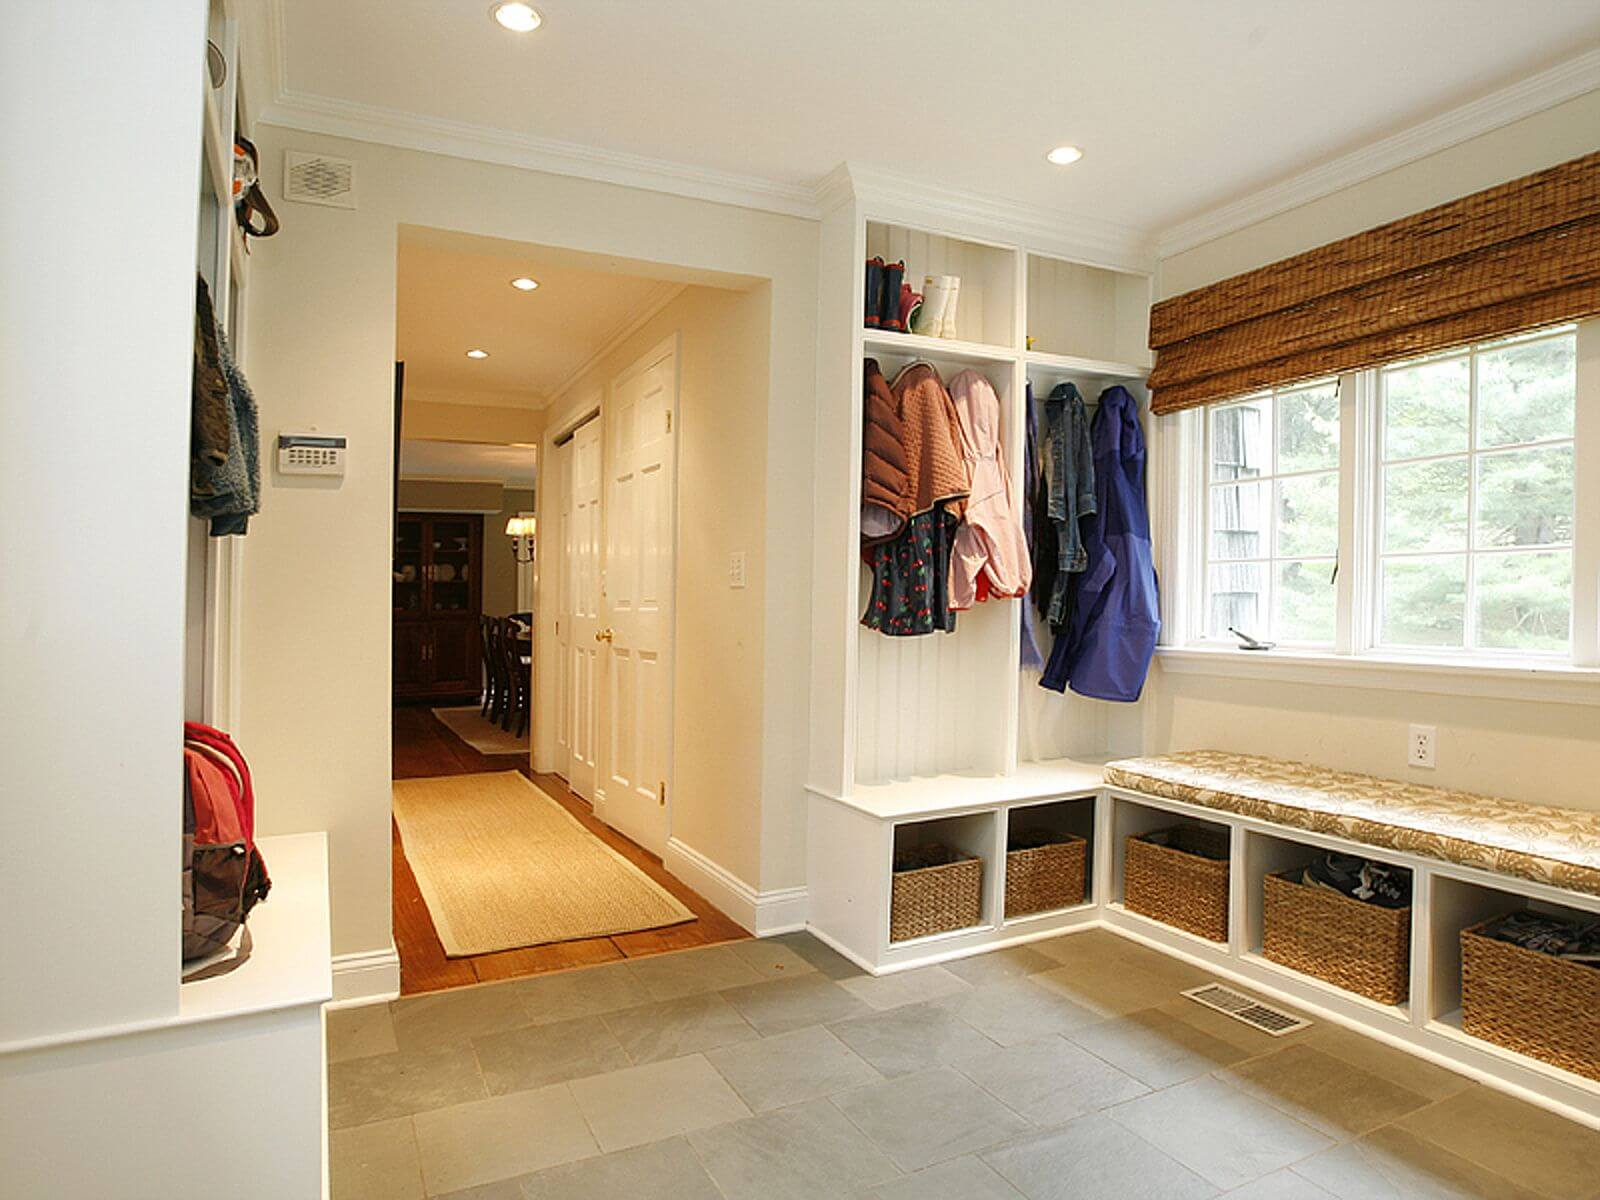 45 superb mudroom entryway design ideas with benches On mudroom locker design plans